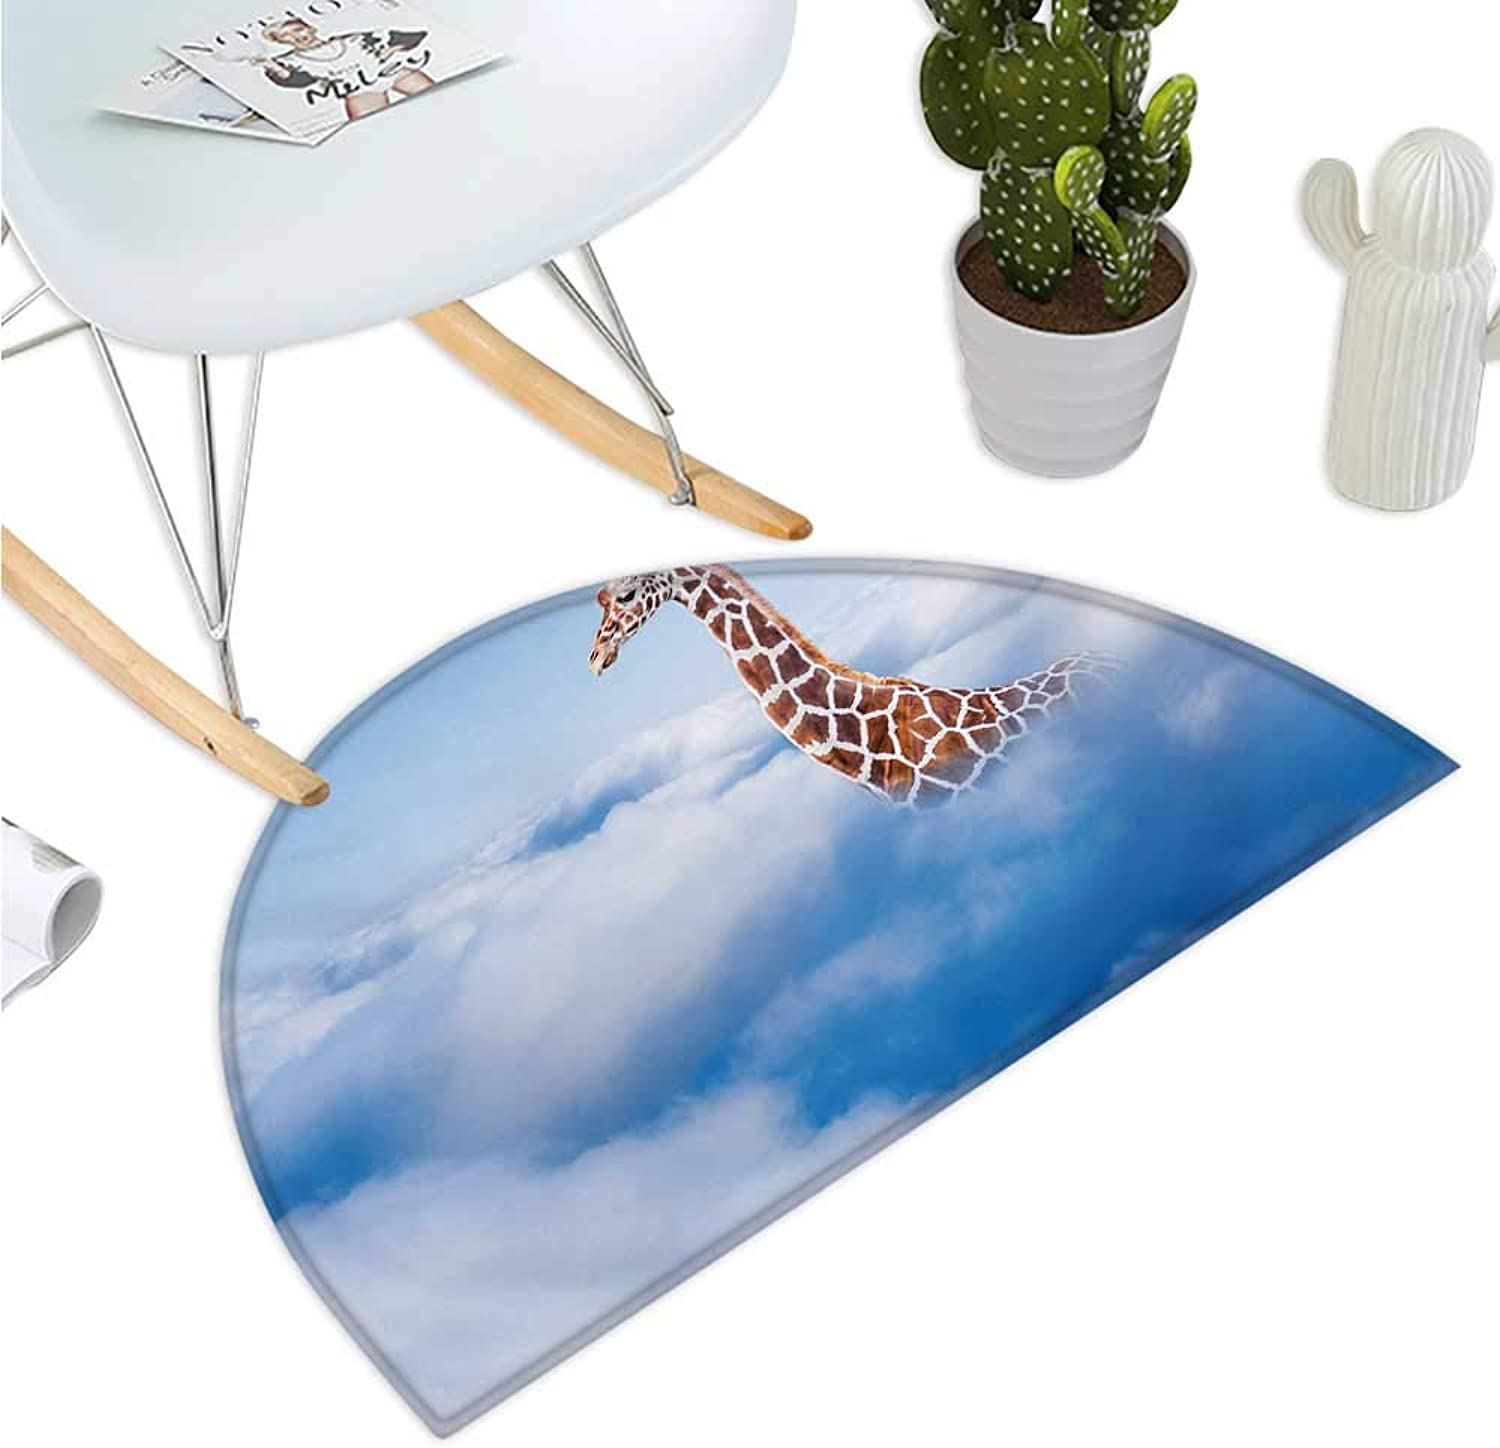 Giraffe Semicircle Doormat Aerial Scene of a Flying Animal in Fluffy Clouds Heaven Fantasy for Animals Themed Entry Door Mat H 35.4  xD 53.1  White Brown